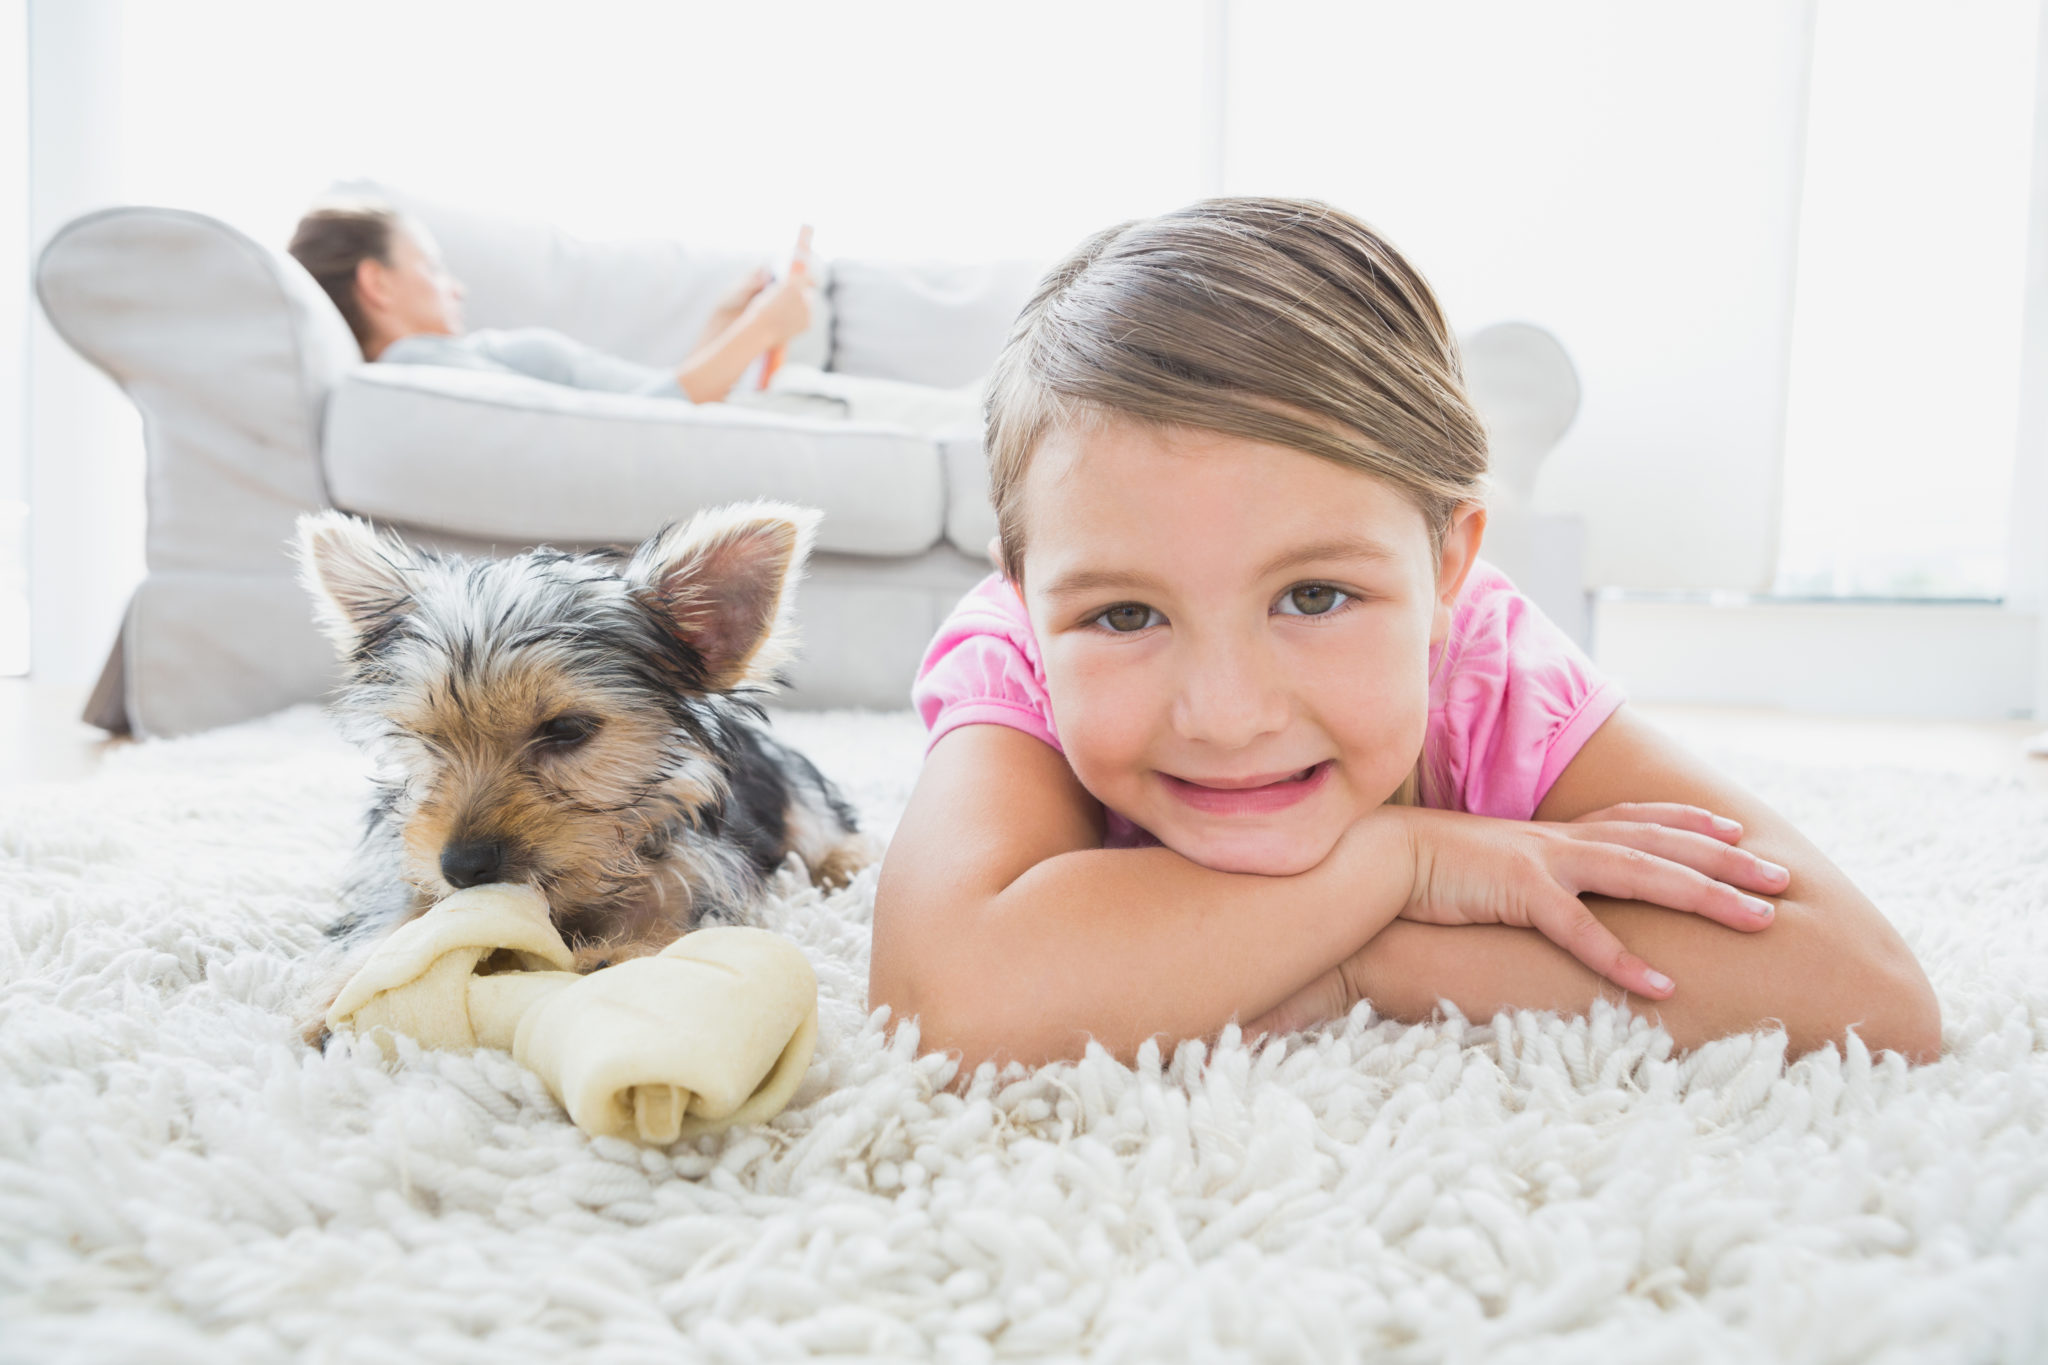 Carpet Cleaning in Colorado Springs for better health